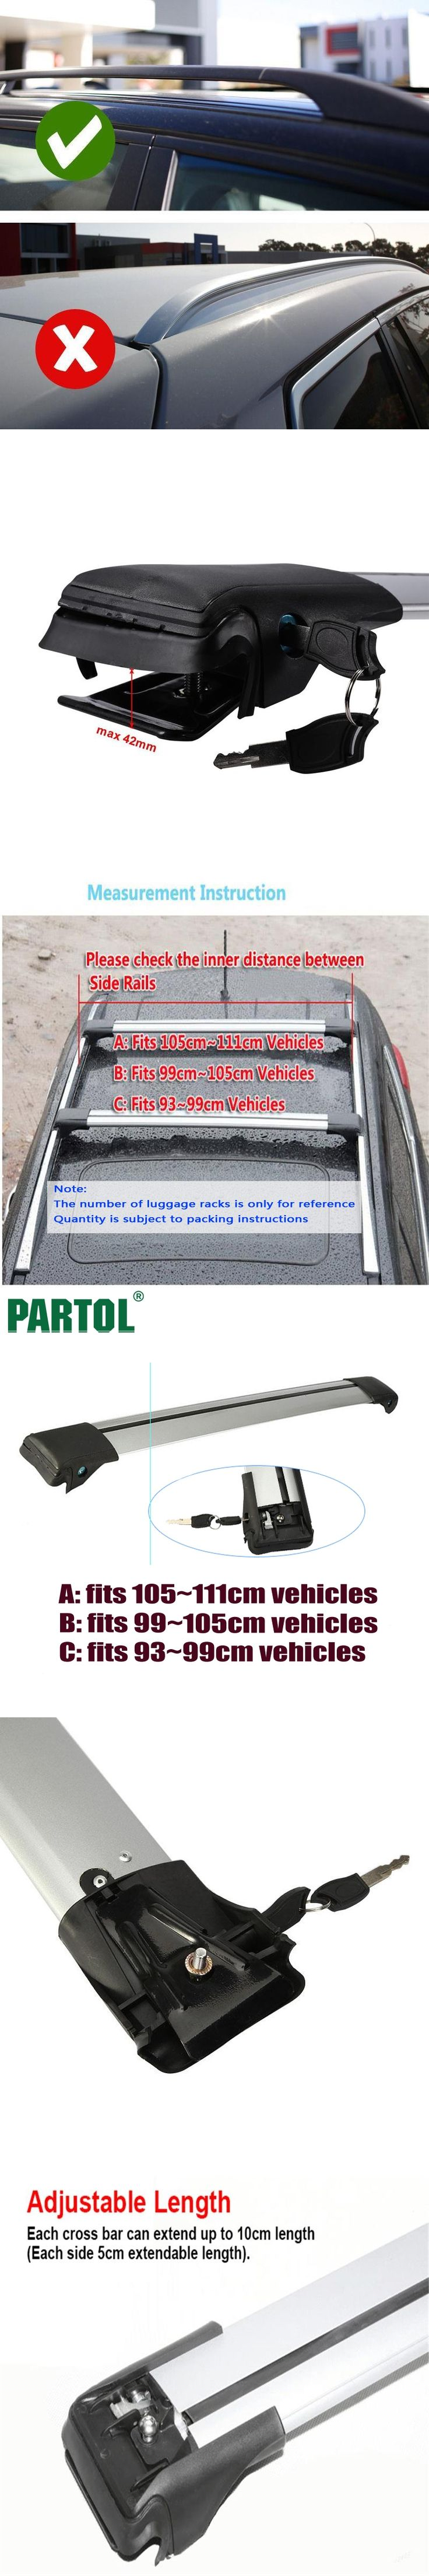 Partol 1x Car Roof Rack Cross Bar Styling Rail Anti Theft Lock